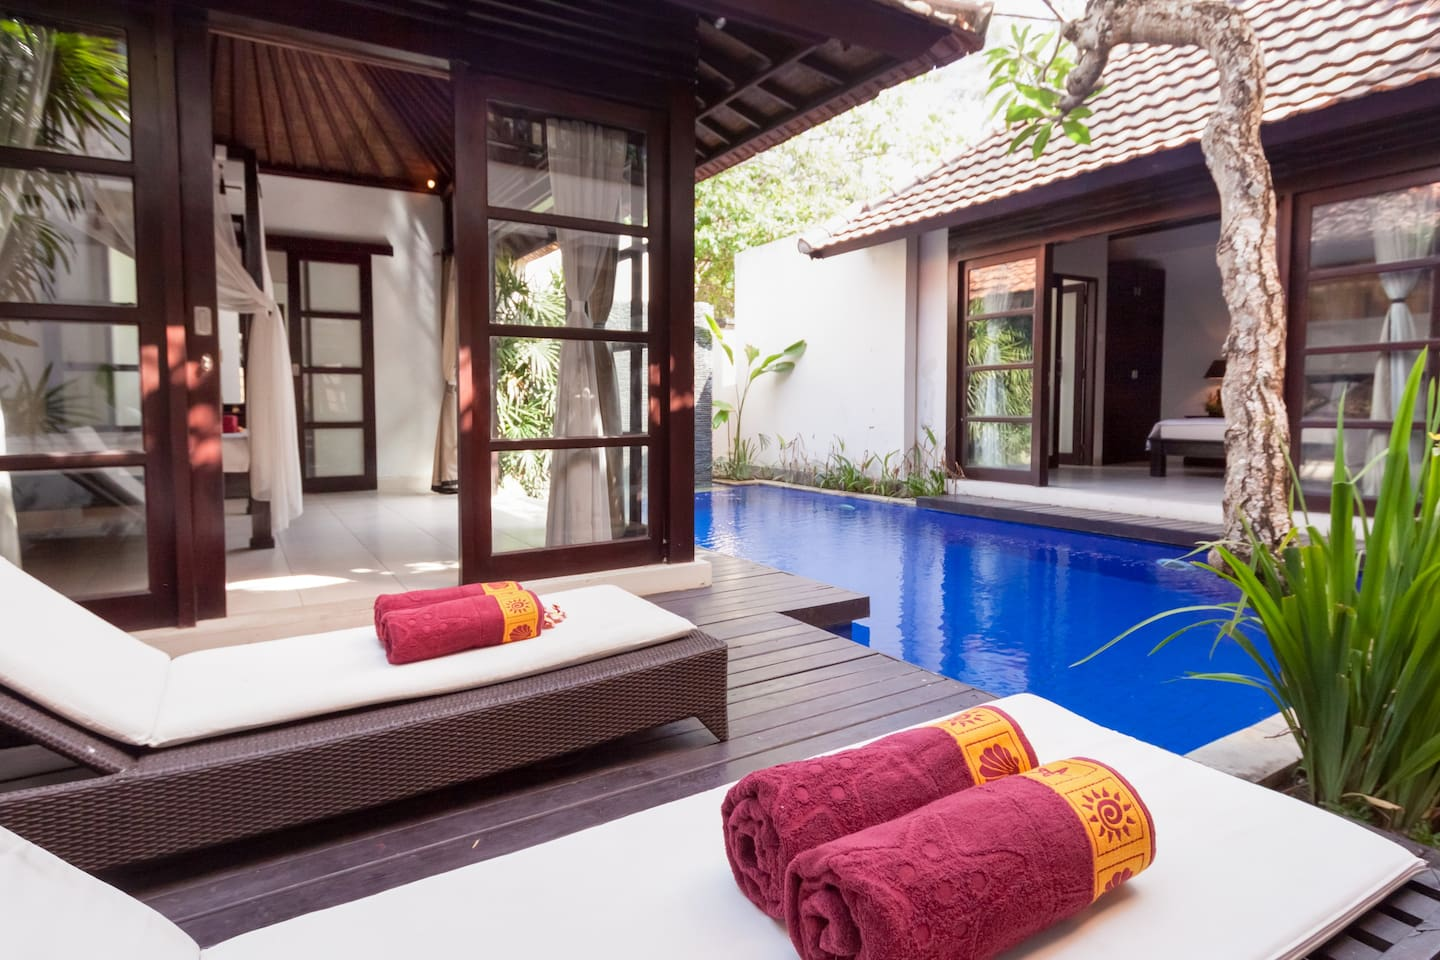 4 EN-SUITE BEDROOMS PRIVATE VILLA 2